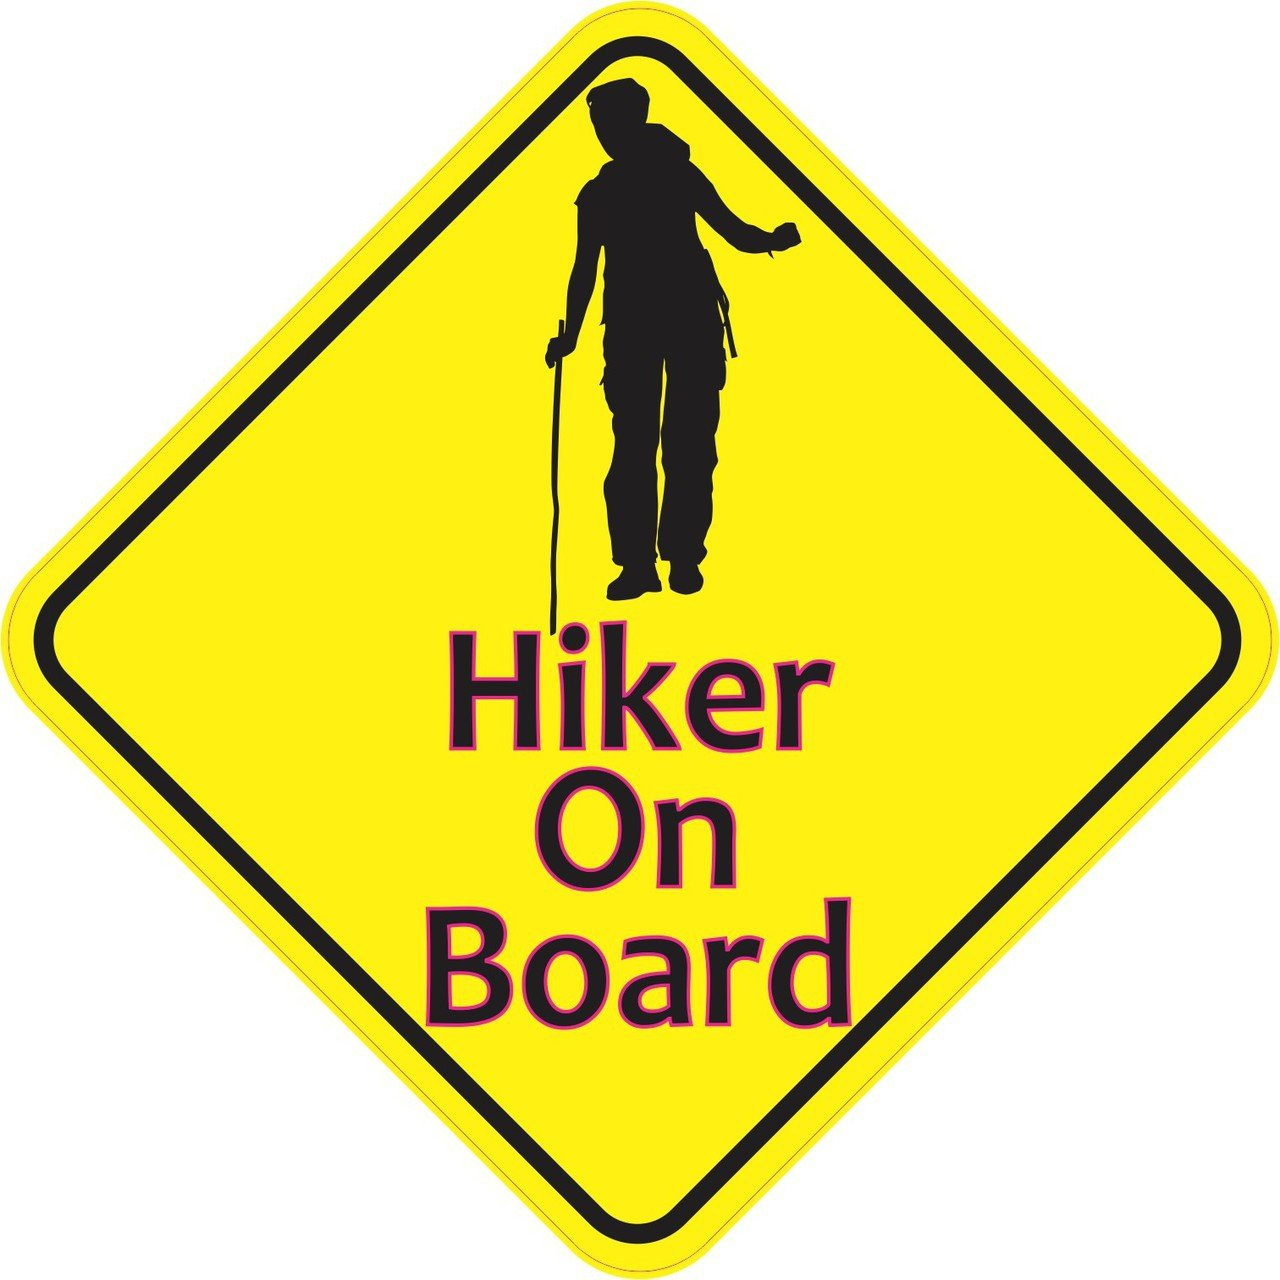 5in x 5in Female Hiker On Board Magnet Vinyl Caution Sign Vehicle Magnets by StickerTalk®